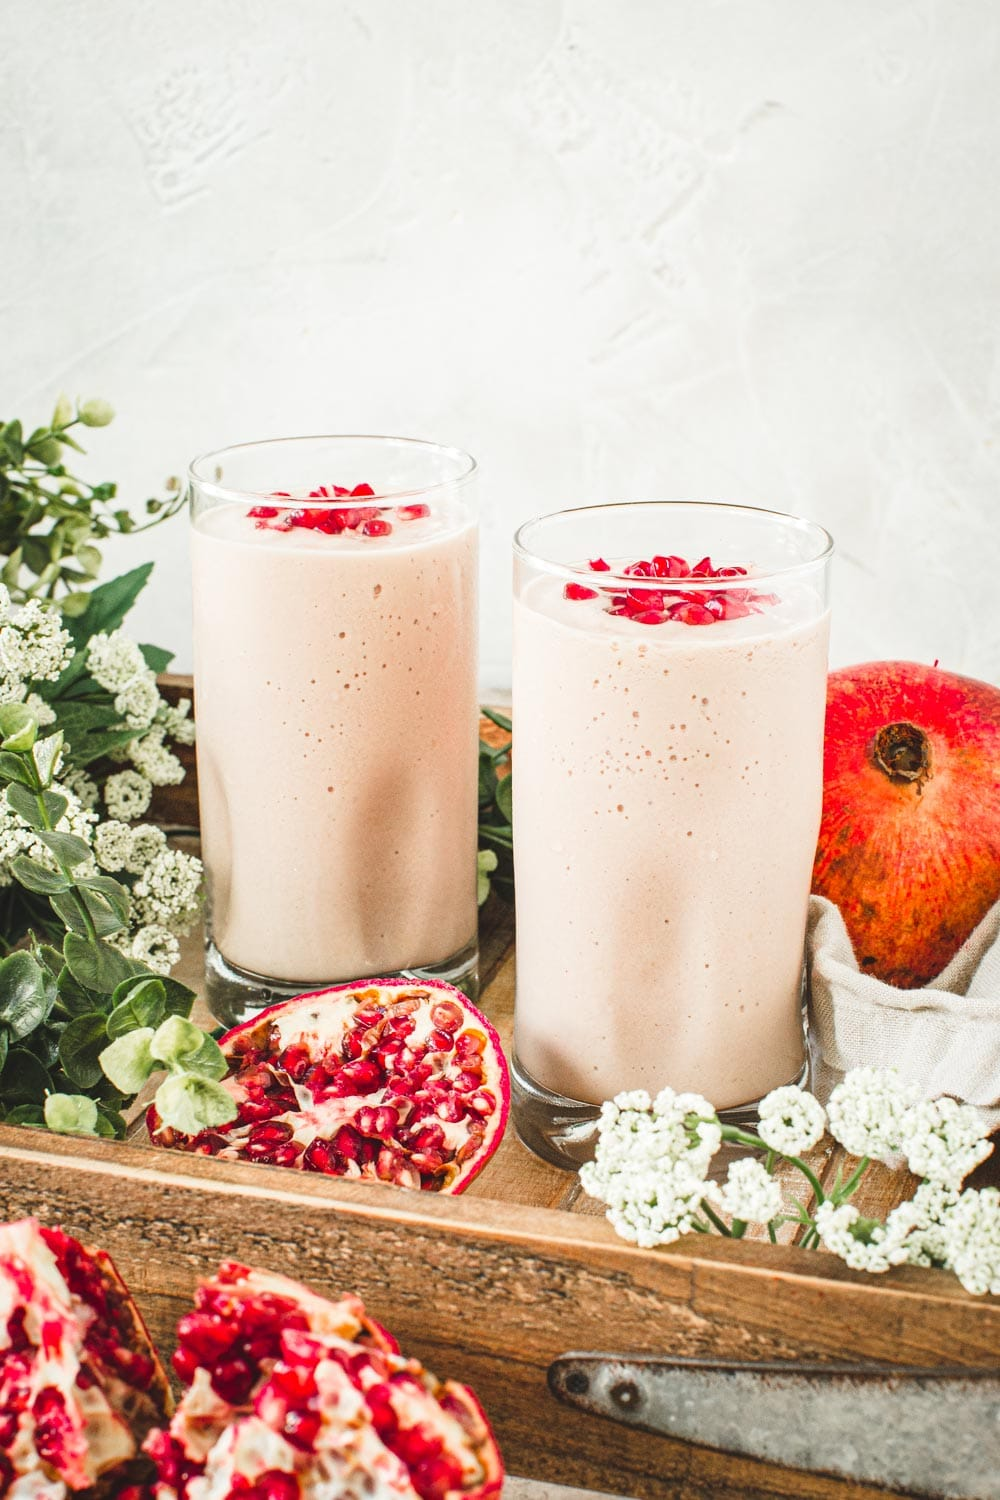 Pomegranate mango smoothies in glass cups with pomegranate seeds on top.